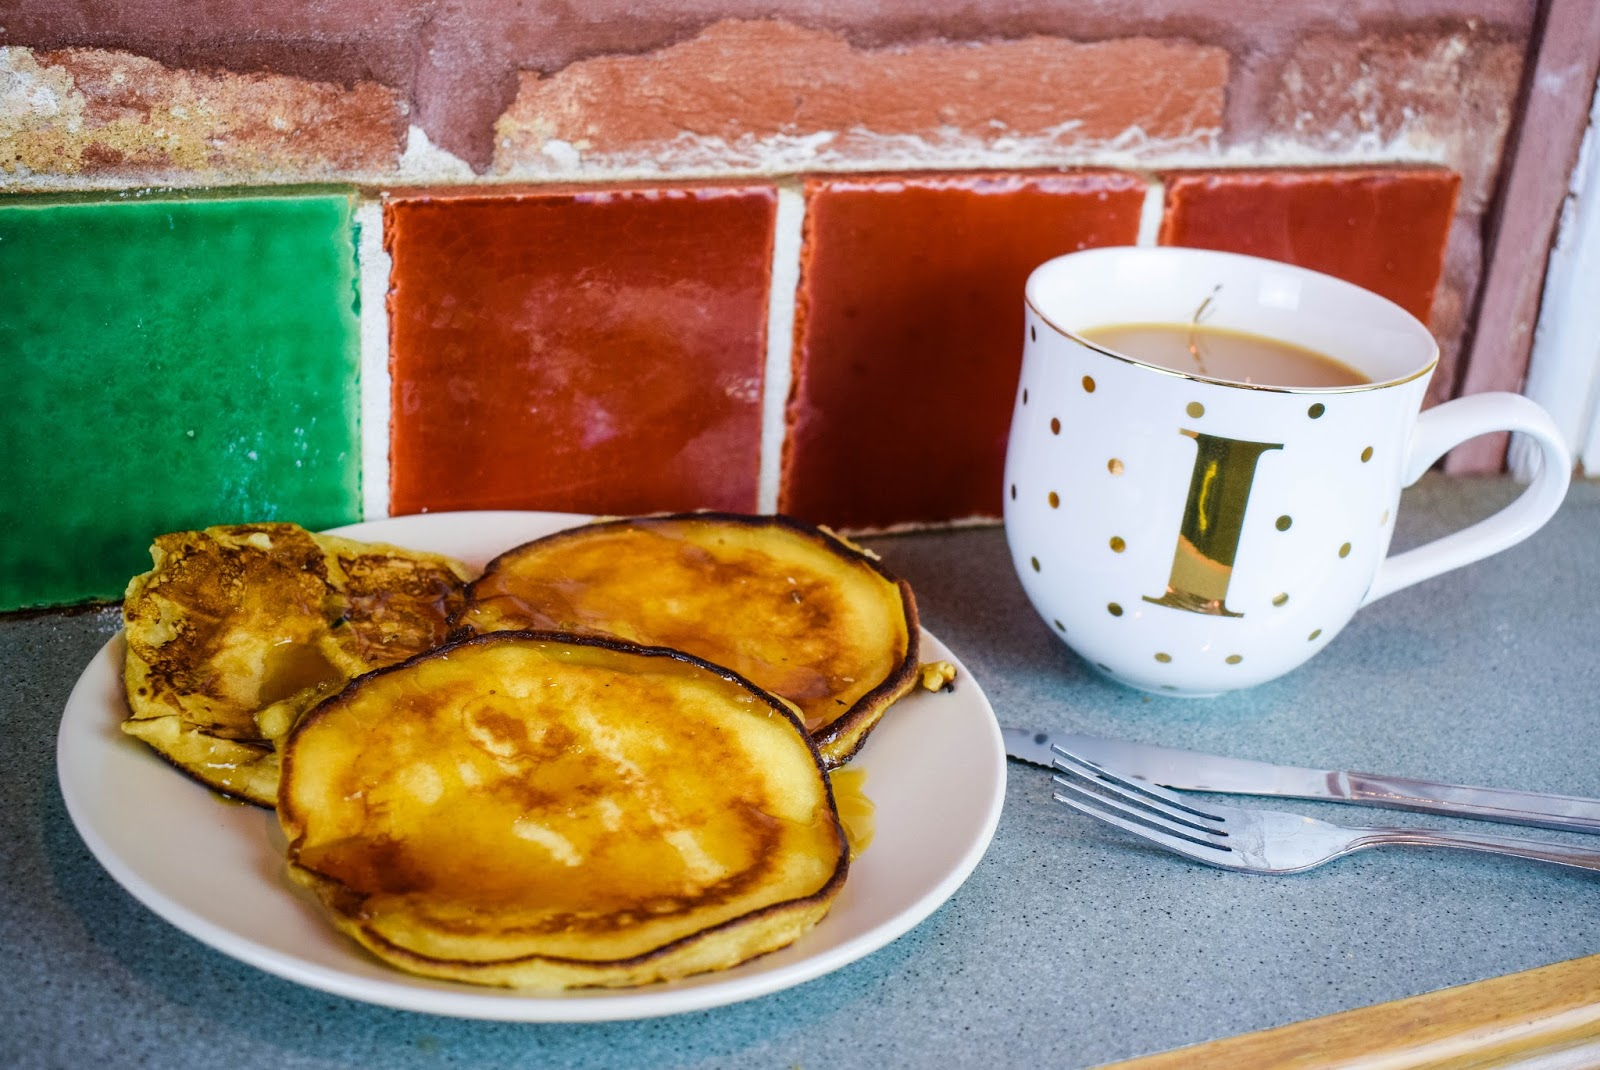 lebellelavie - A little bit of Hygge with Nordic pancakes